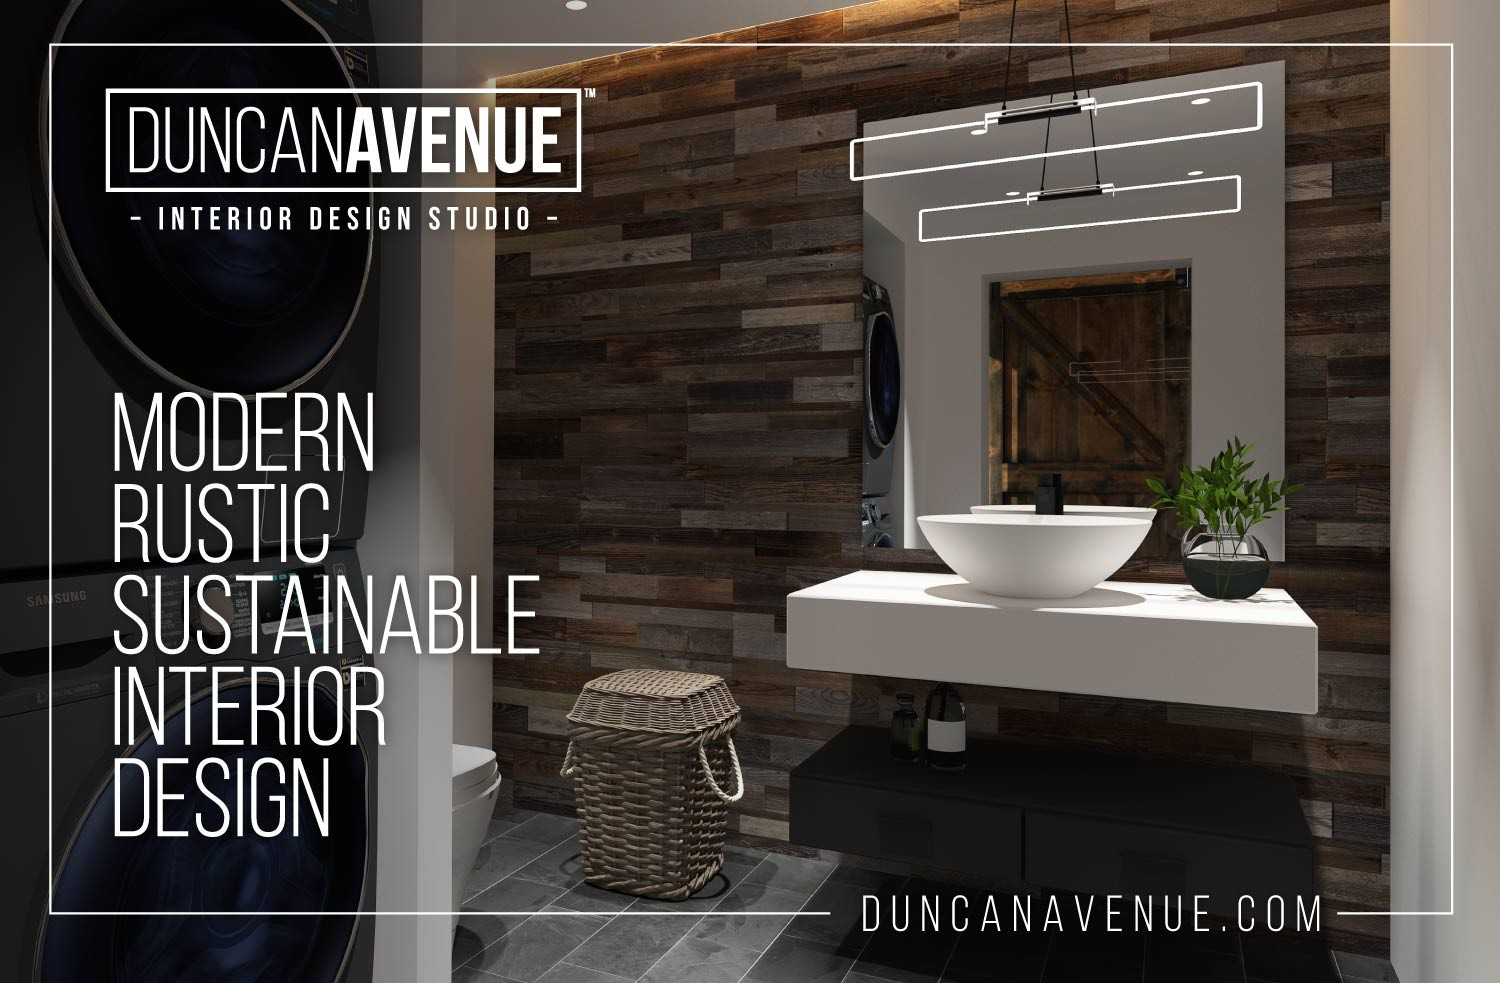 Duncan Avenue Interior Design Studio - Sustainable Modern Rustic Interior Design in the Hudson Valley